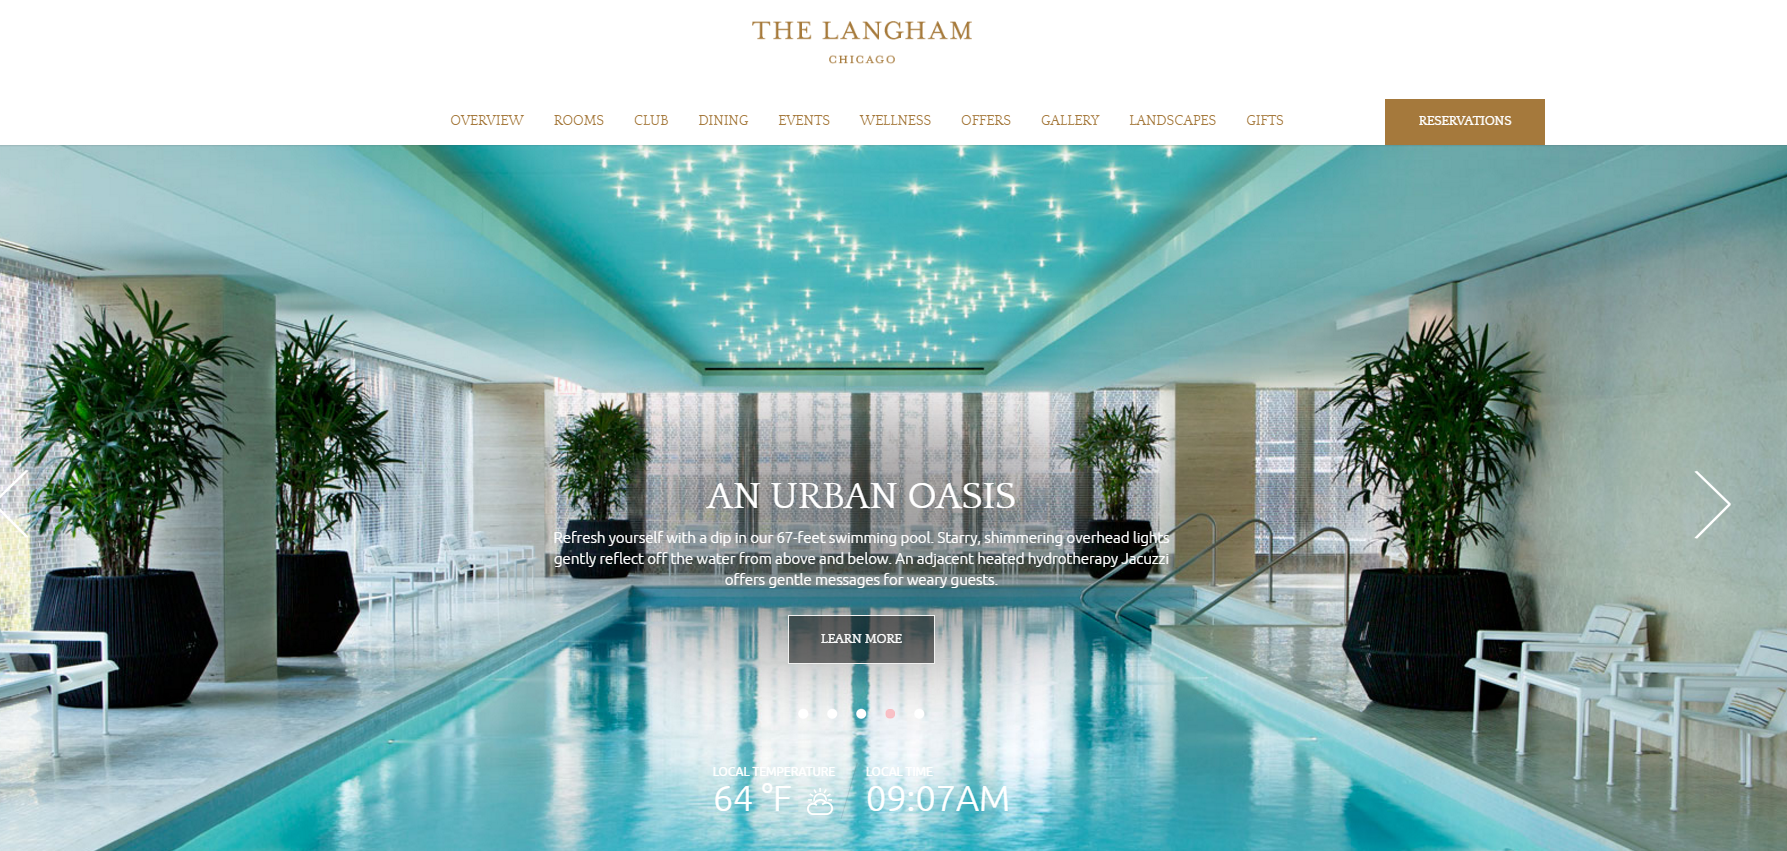 the-langham-chicago-hotel